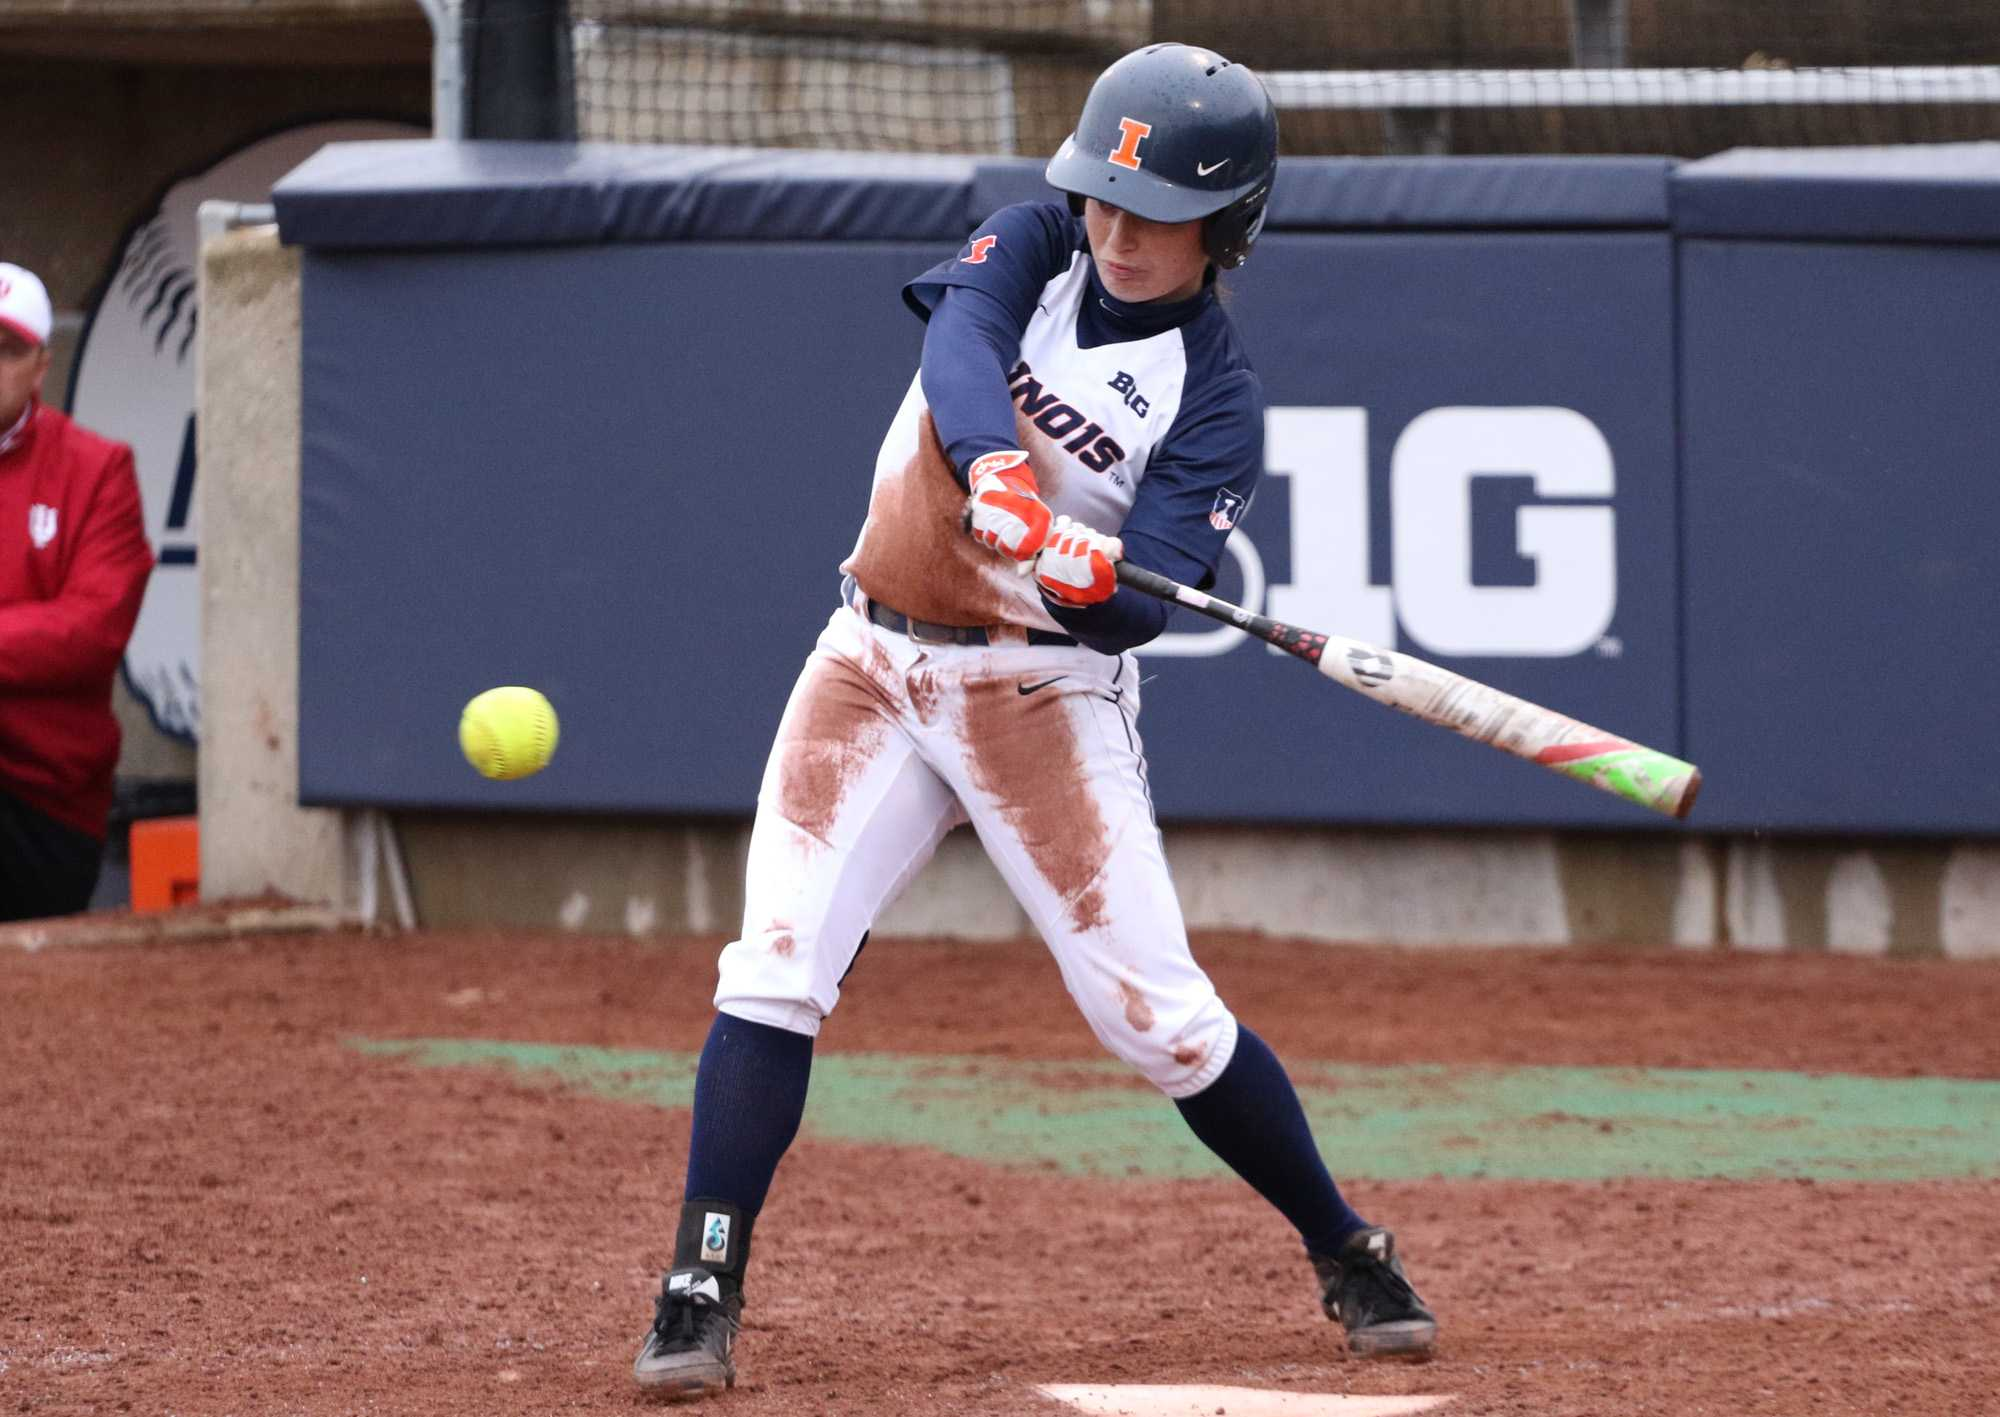 Illinois' Alyssa Gunther (2) swings at the ball during the softball game v. Indiana at Eichelberger Field on Sunday, Mar. 29, 2015. Illinois won 22-12.